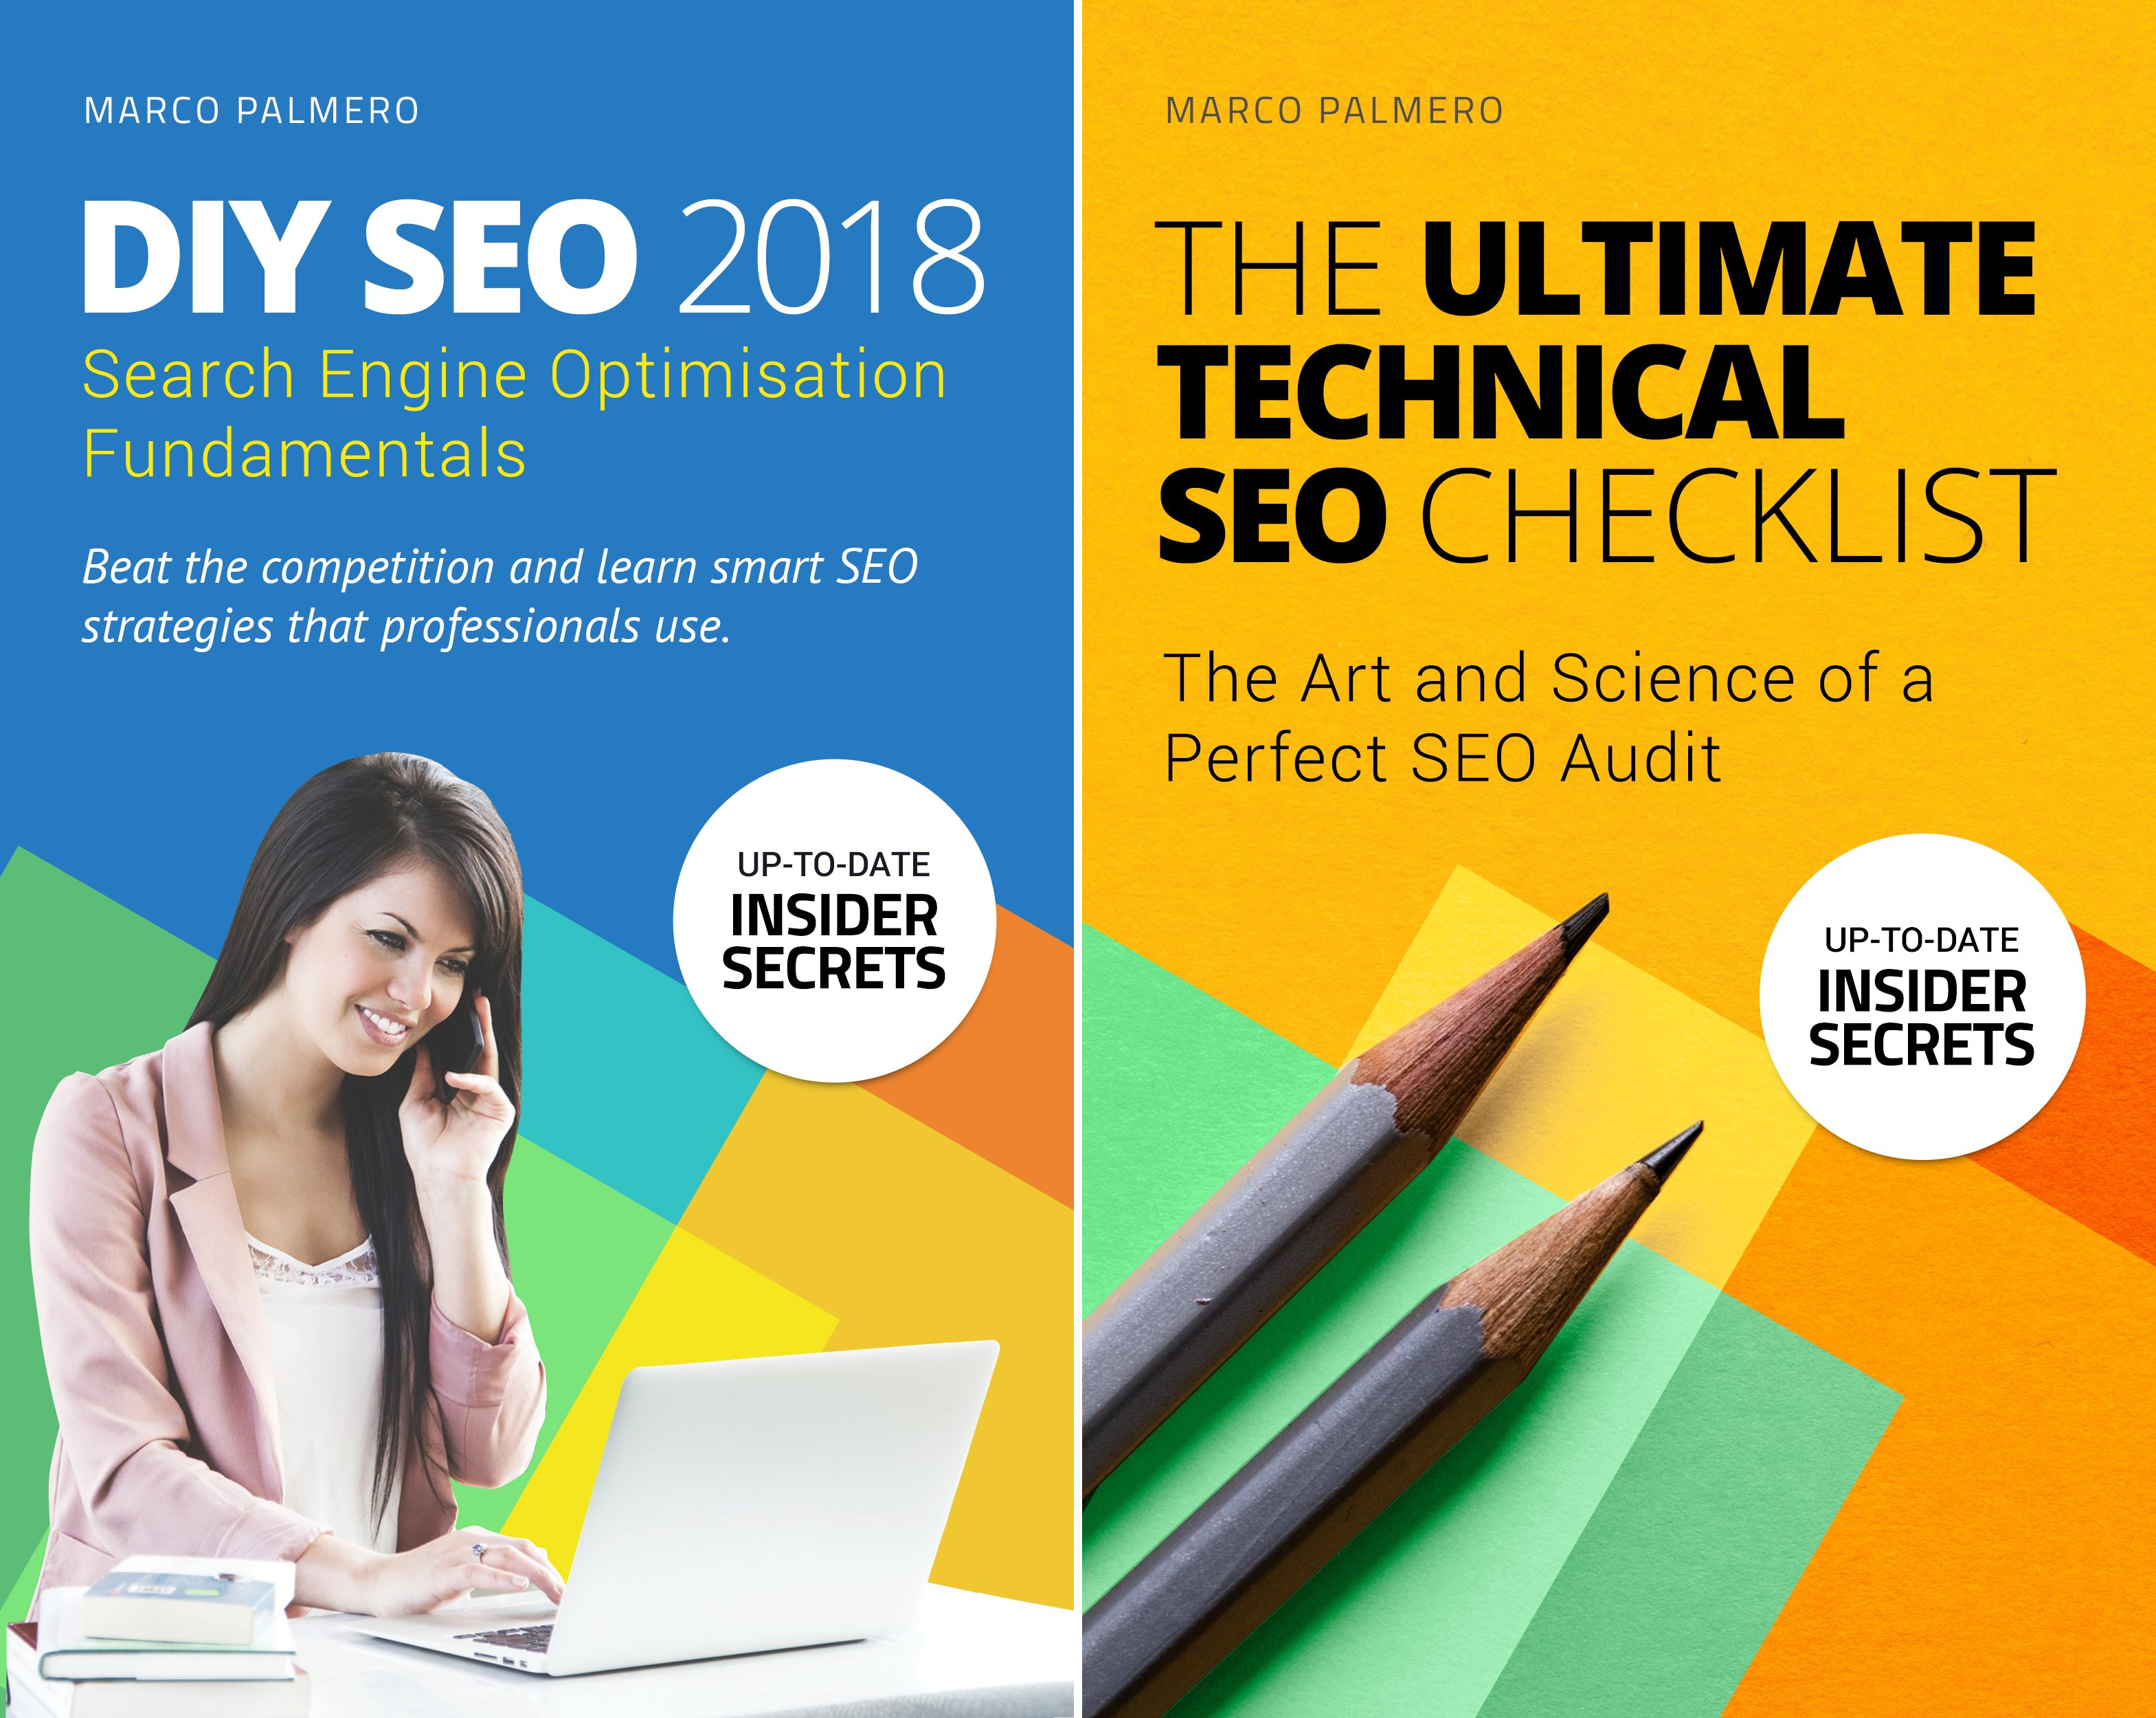 Search Engine Optimisation SEO for Experts and Beginners (2 Book Series)